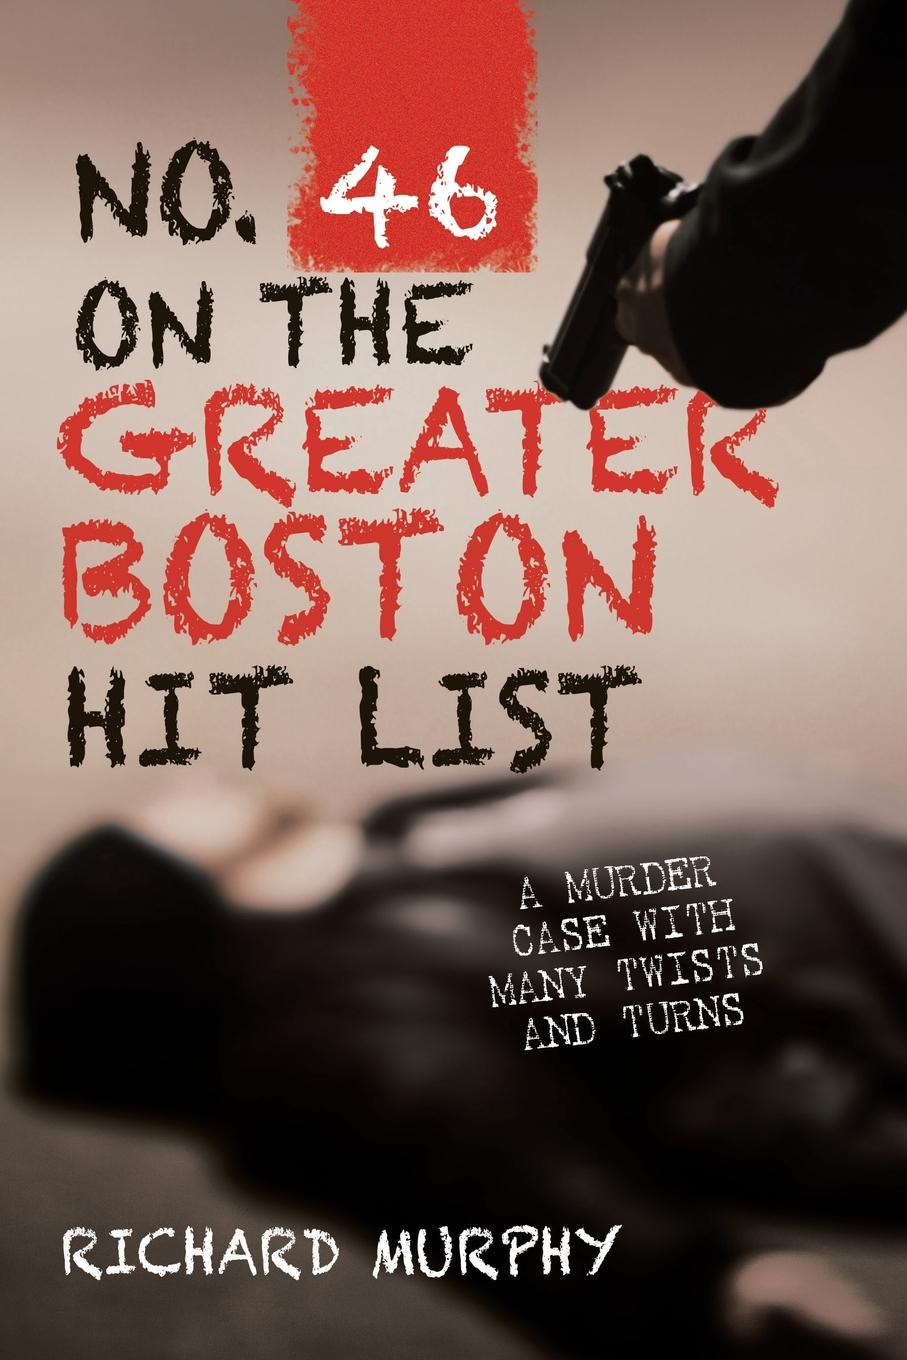 Richard Murphy No. 46 on the Greater Boston Hit List. A Murder Case with Many Twists and Turns murder on washington square